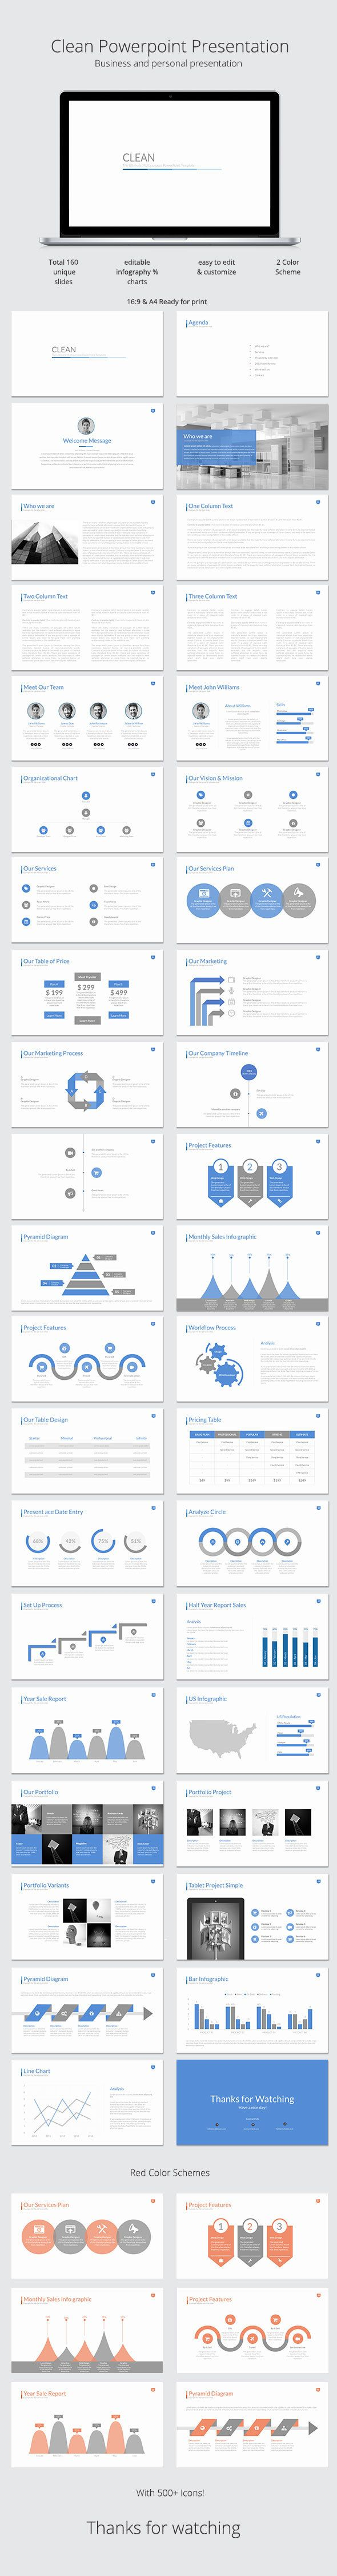 Coolmathgamesus  Splendid  Ideas About Powerpoint Presentations On Pinterest With Goodlooking Clean Powerpoint Template With Astounding To Help Protect Your Privacy Powerpoint Has Blocked Also Template For Powerpoint In Addition Powerpoint Pdf And Modify Background Graphics Powerpoint  As Well As Powerpoint Templates Teachers Additionally New Features In Powerpoint  From Pinterestcom With Coolmathgamesus  Goodlooking  Ideas About Powerpoint Presentations On Pinterest With Astounding Clean Powerpoint Template And Splendid To Help Protect Your Privacy Powerpoint Has Blocked Also Template For Powerpoint In Addition Powerpoint Pdf From Pinterestcom